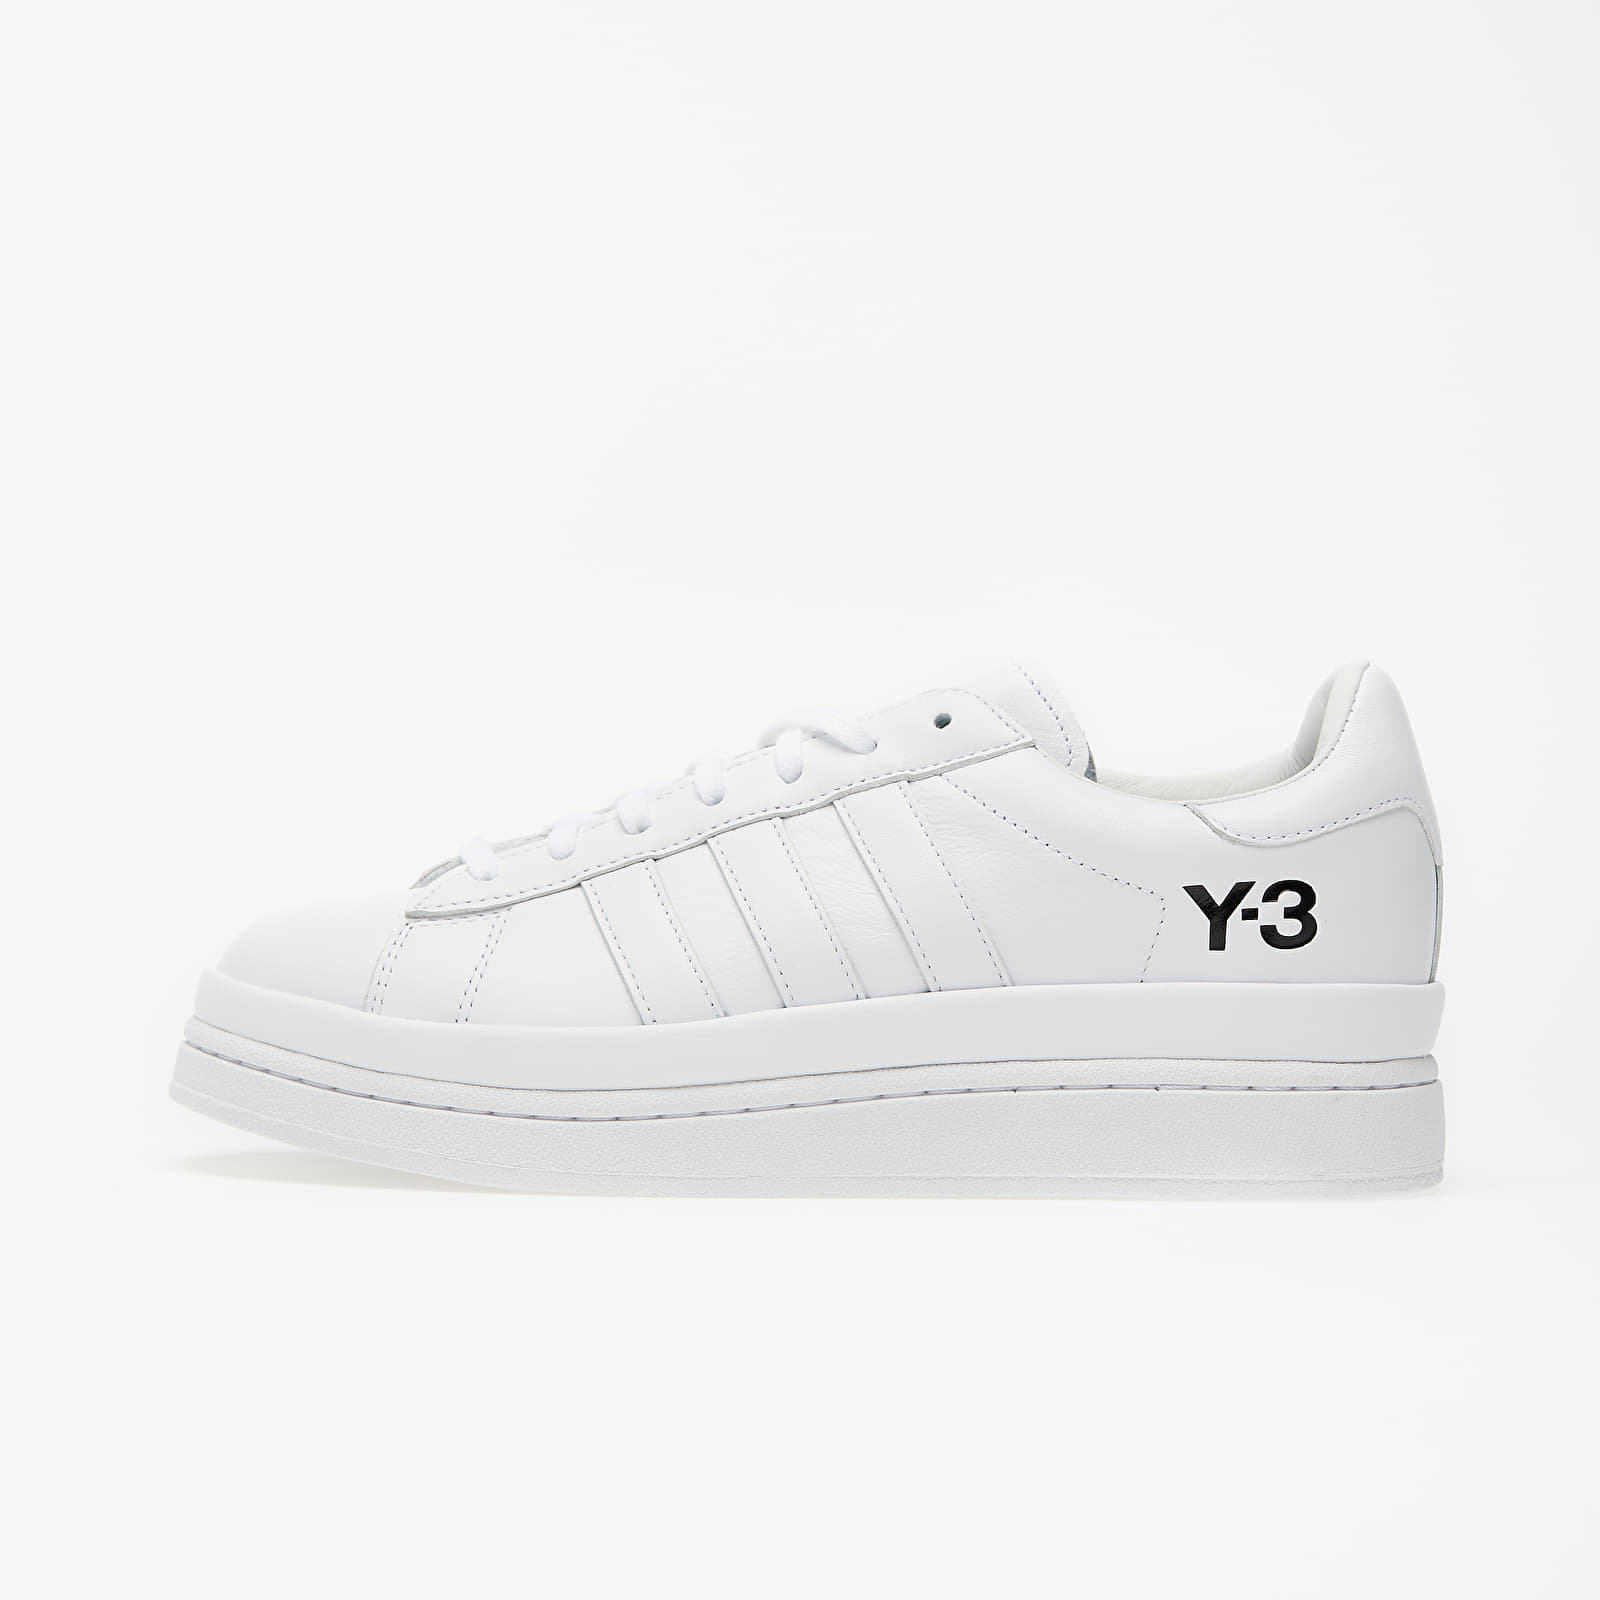 Men's shoes Y-3 Hicho Core White/ Core White/ Black